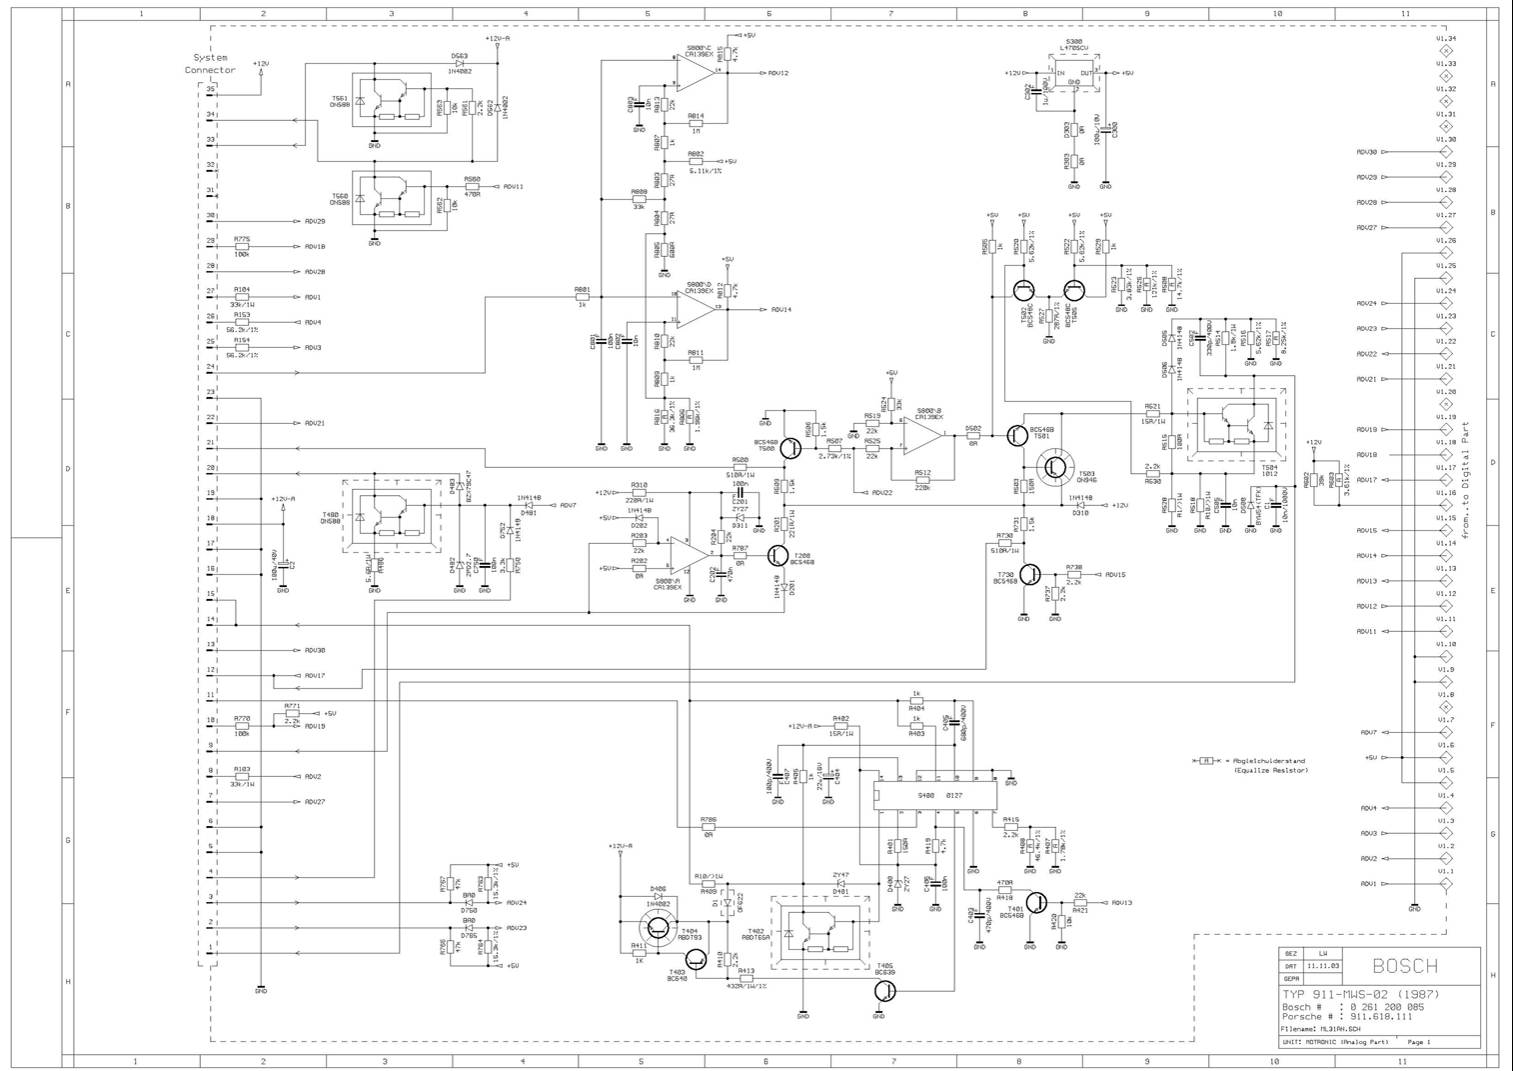 dme na 1 dme wiring diagram normally aspirated 944 porsche 944 wiring diagram pdf at aneh.co